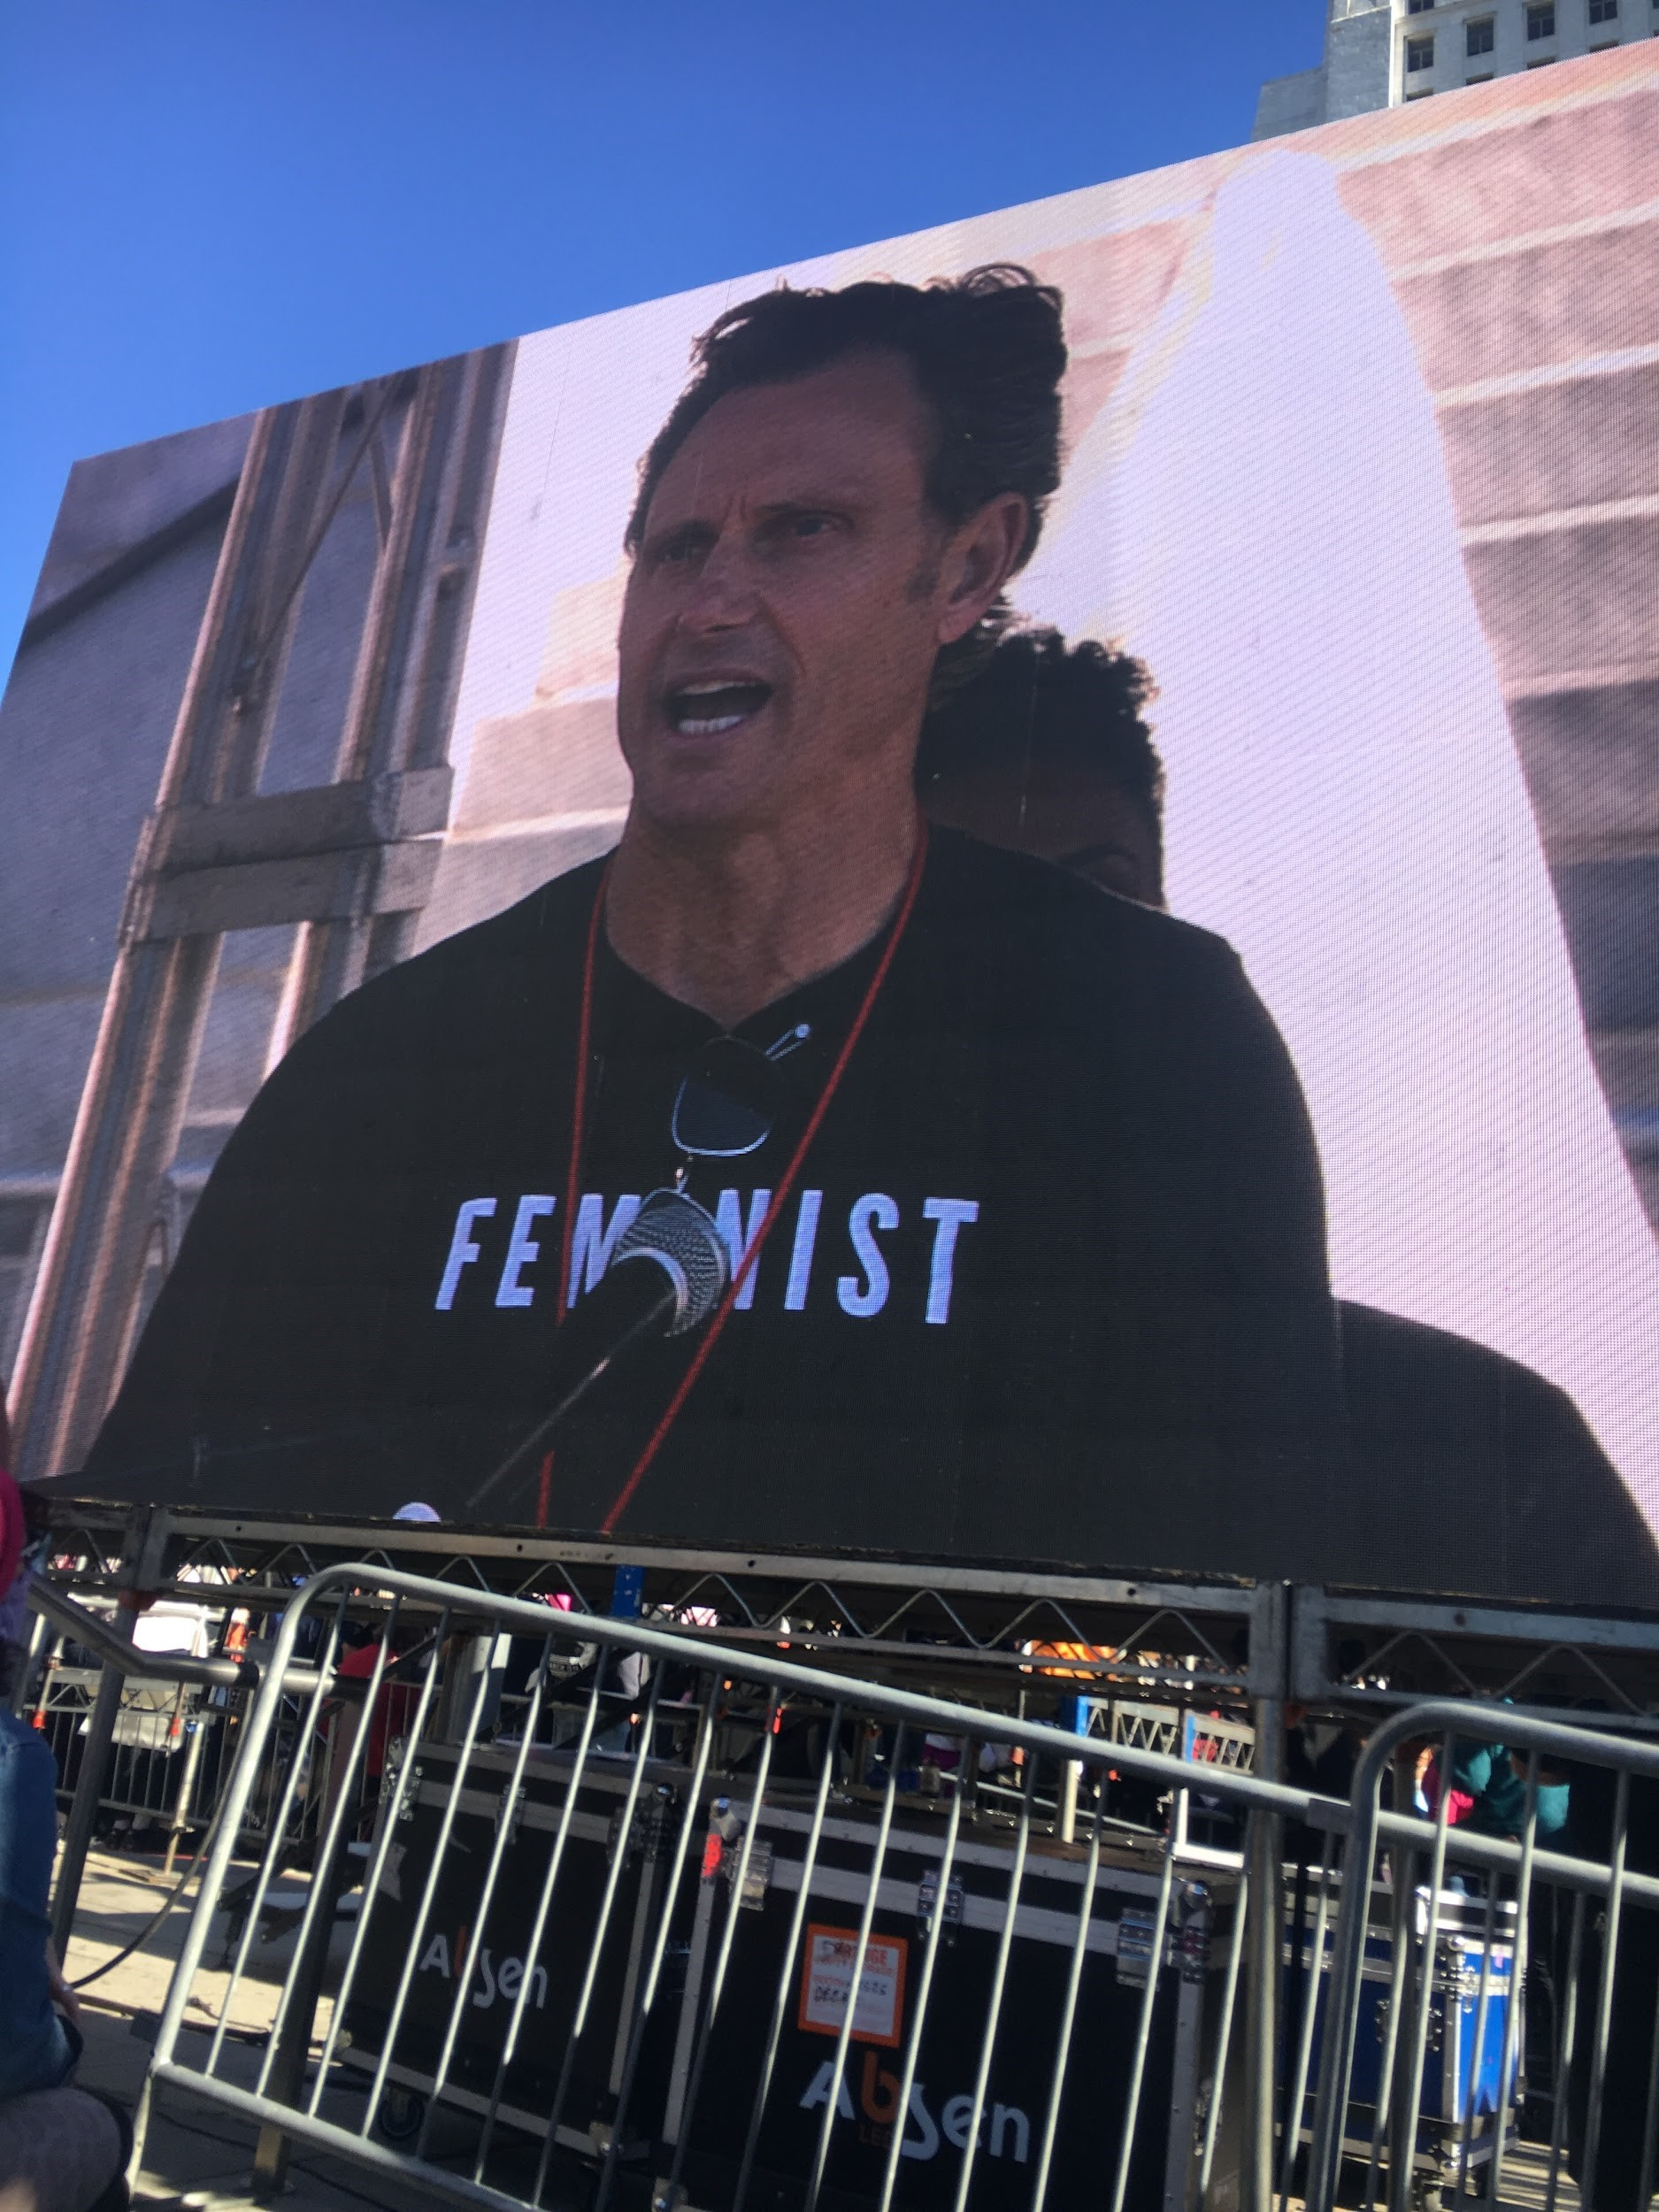 Photo from the woman's march that has a picture of a male participant wearing a t-shirt that says